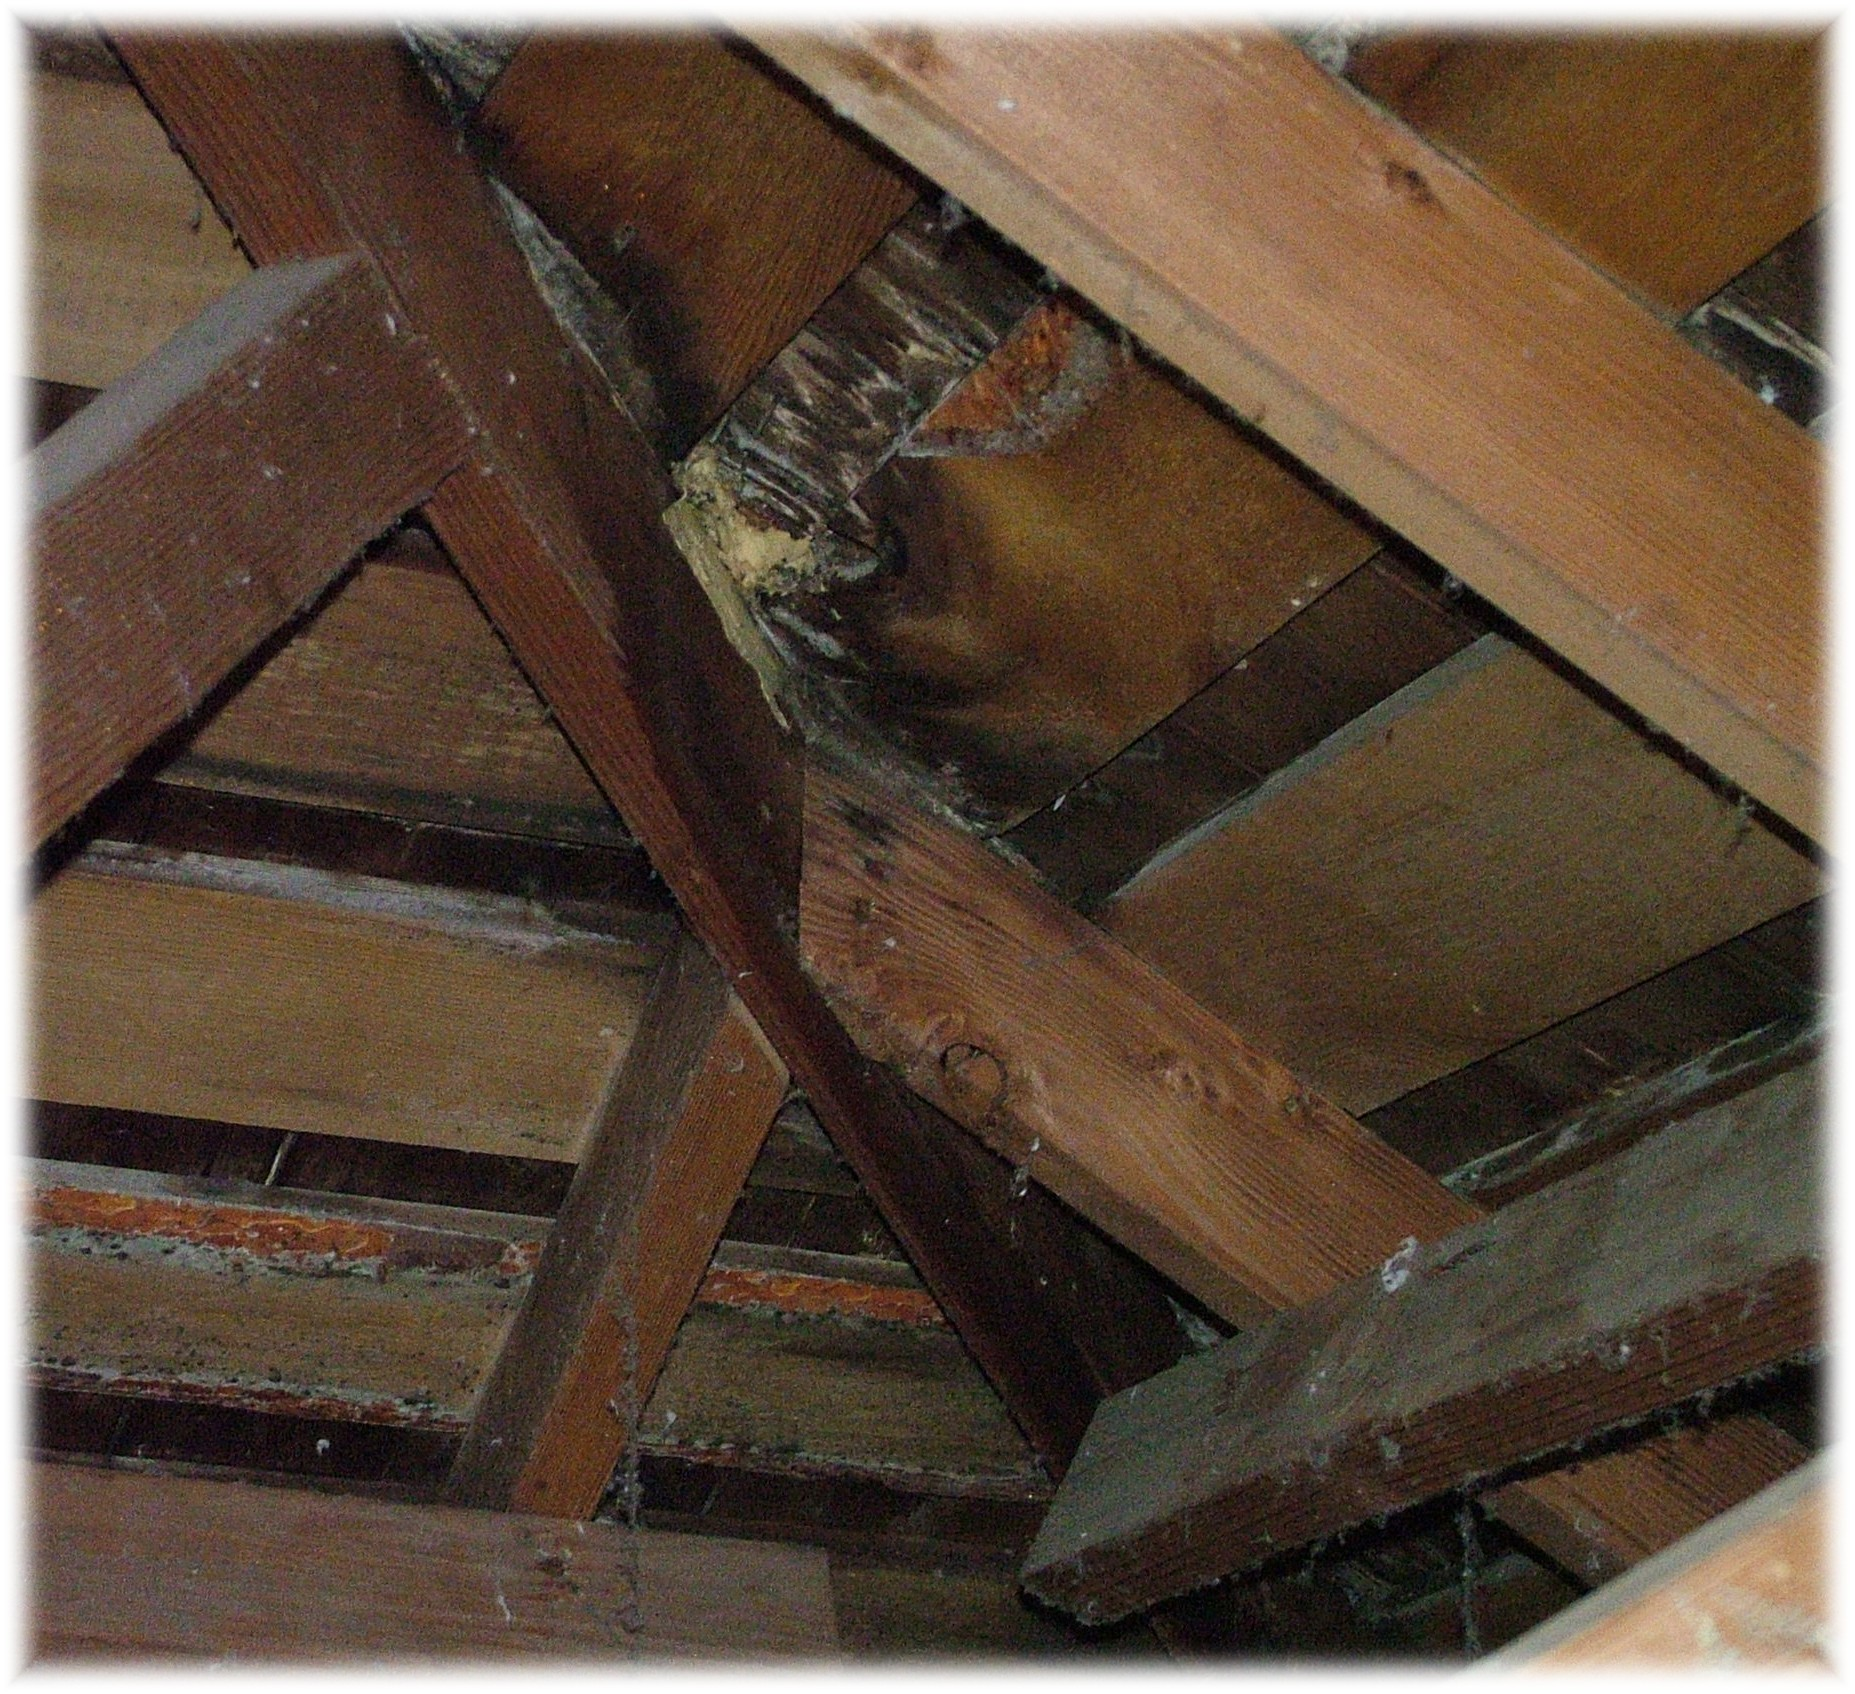 Leaking Roof Repairs How To Build A House